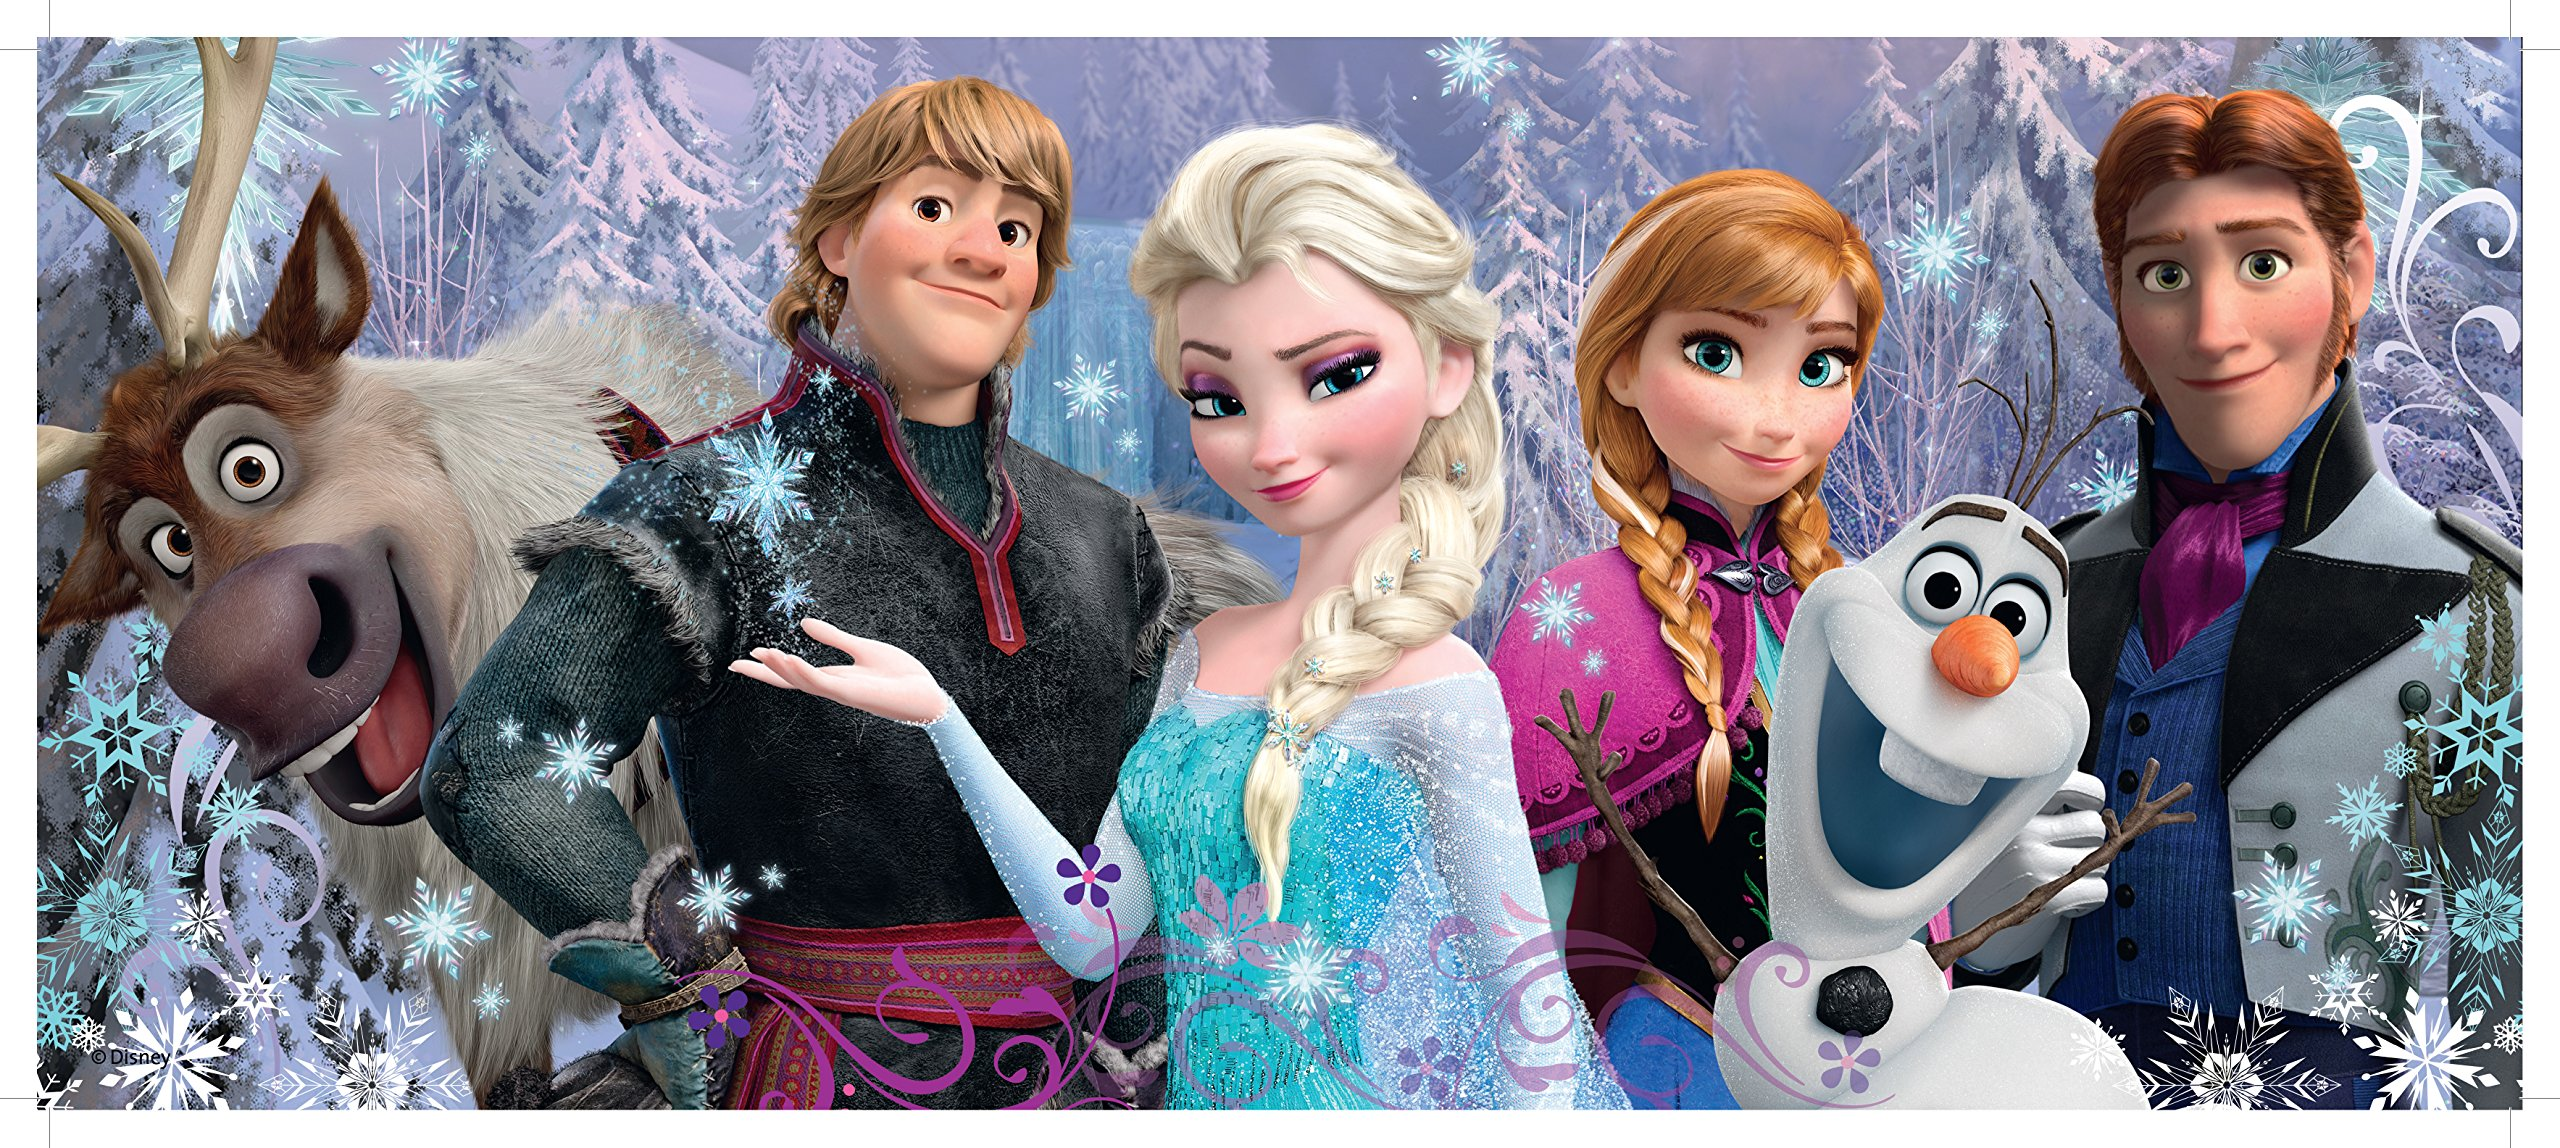 Ravensburger Disney Frozen Friends Panorama 100 Piece Jigsaw Puzzle for Kids – Every Piece is Unique, Pieces Fit Together Perfectly